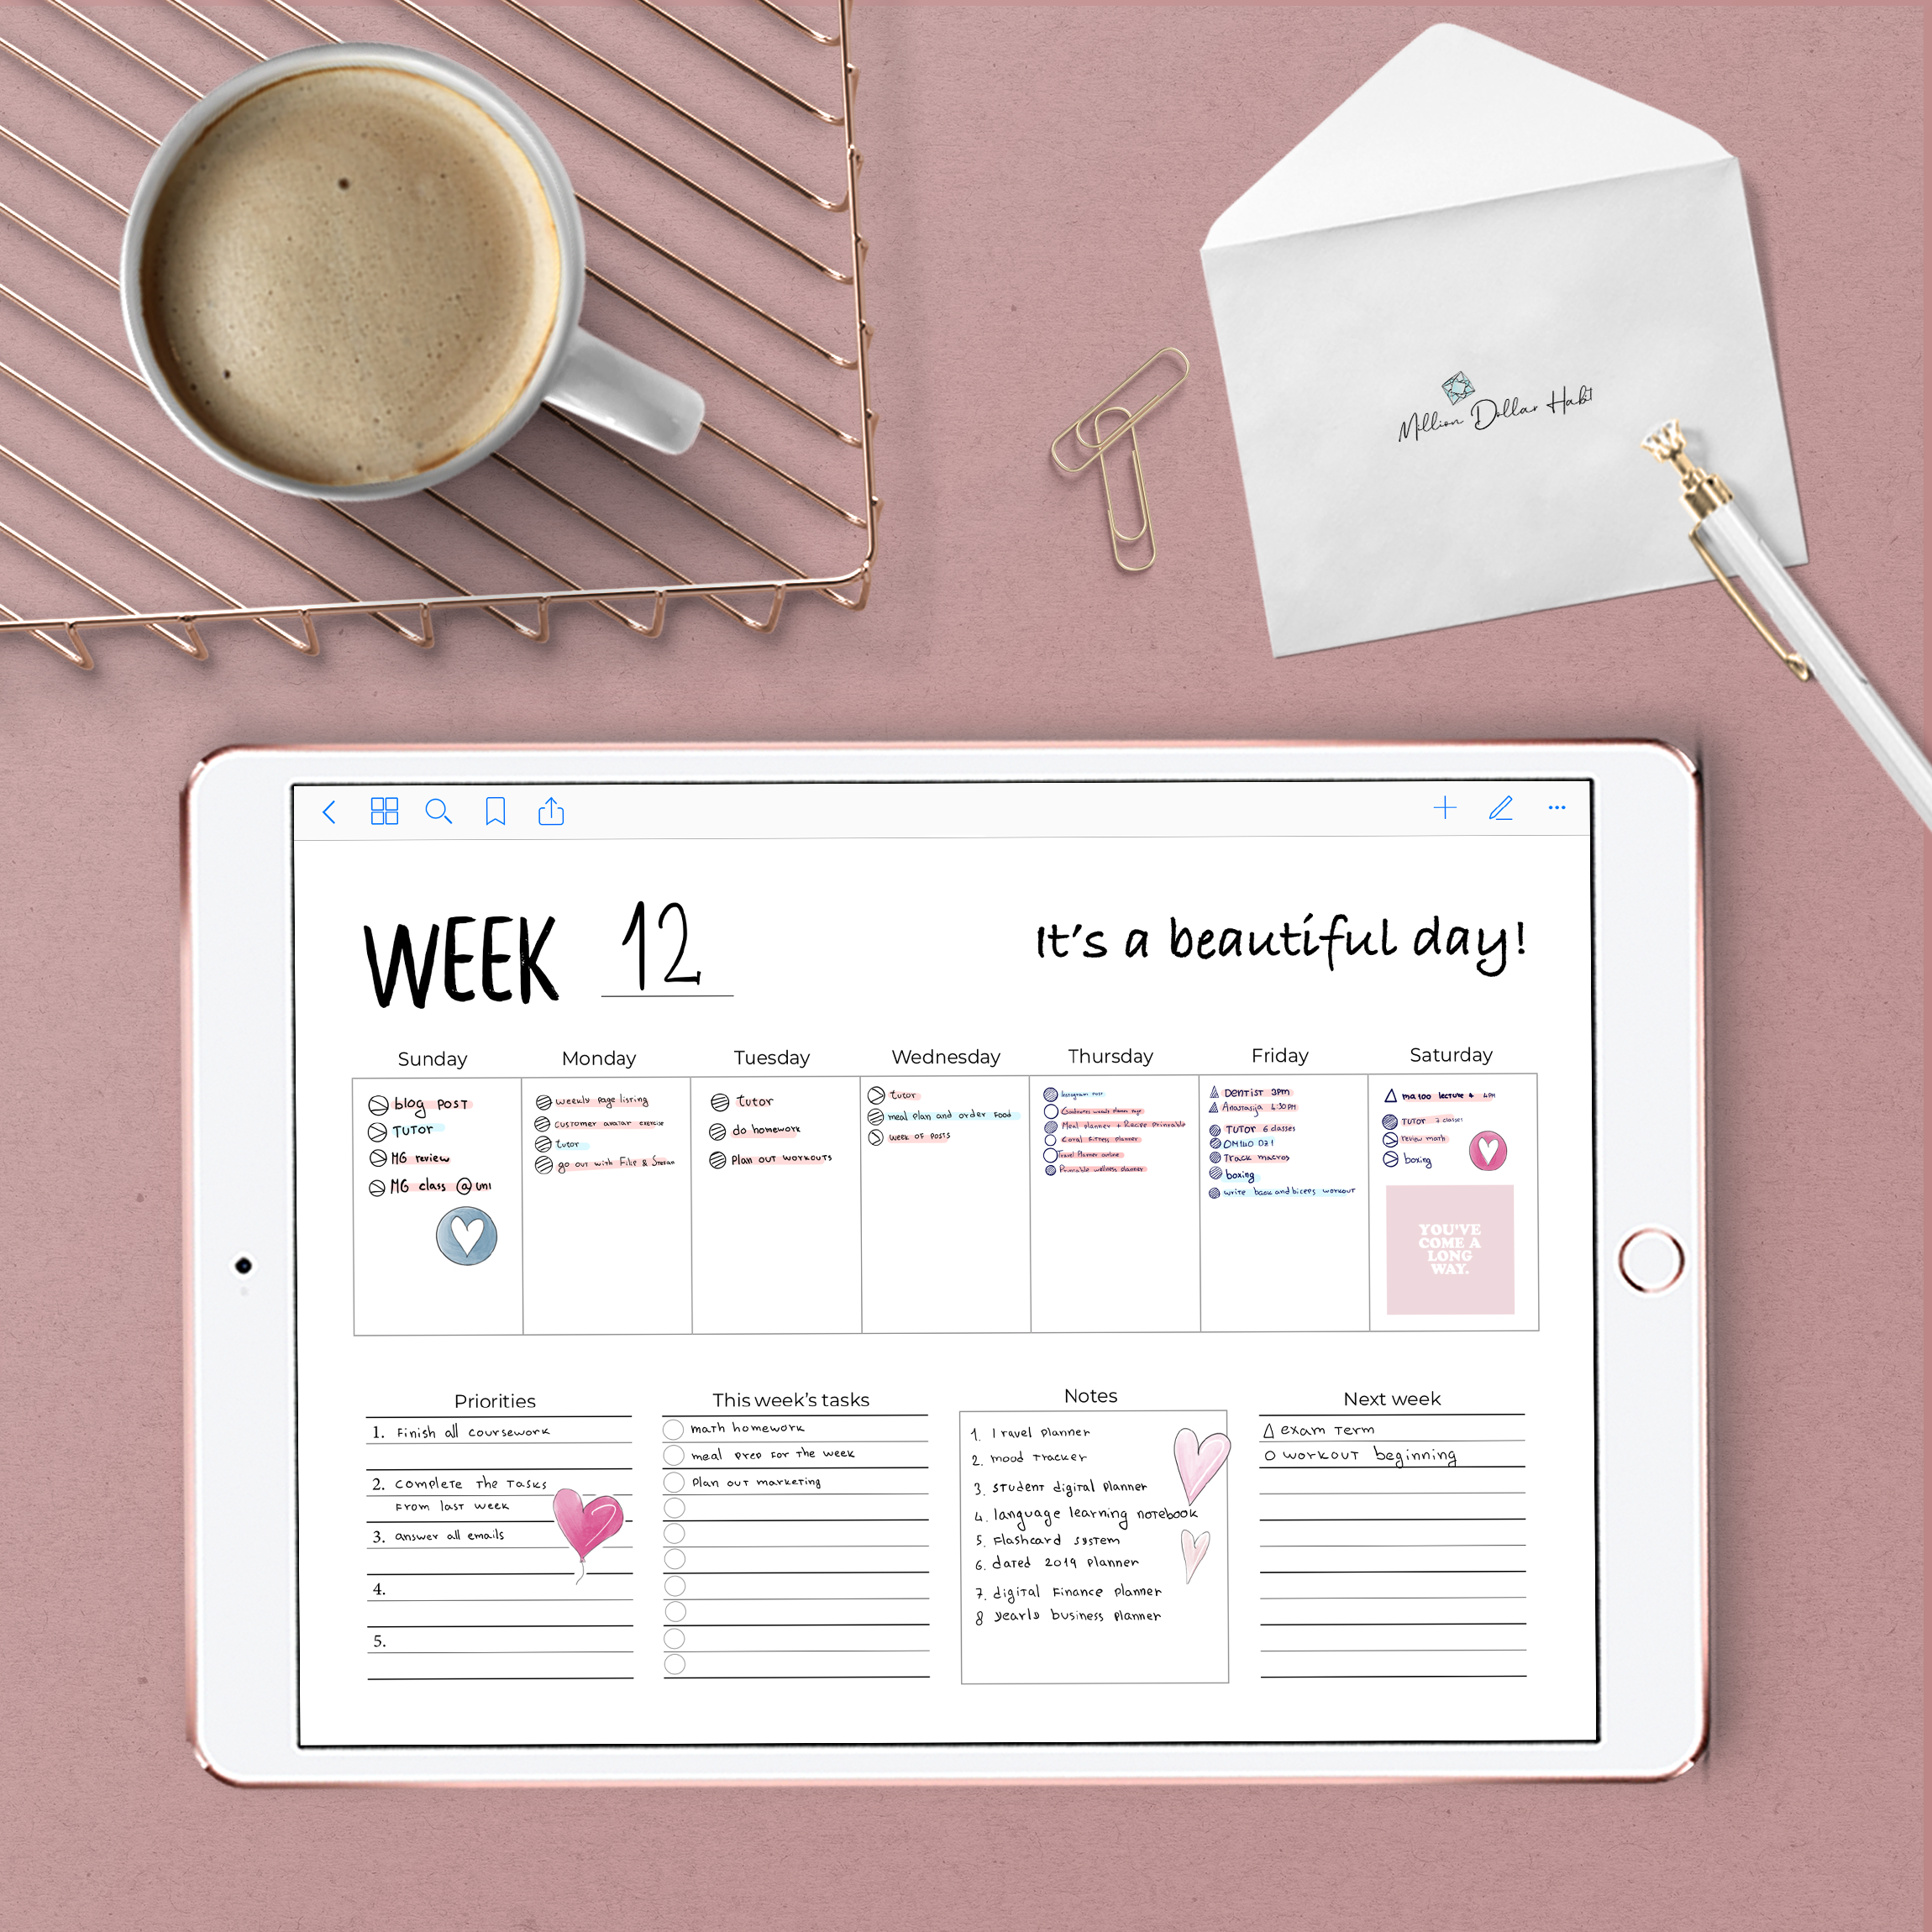 Weekly Goodnotes Planner